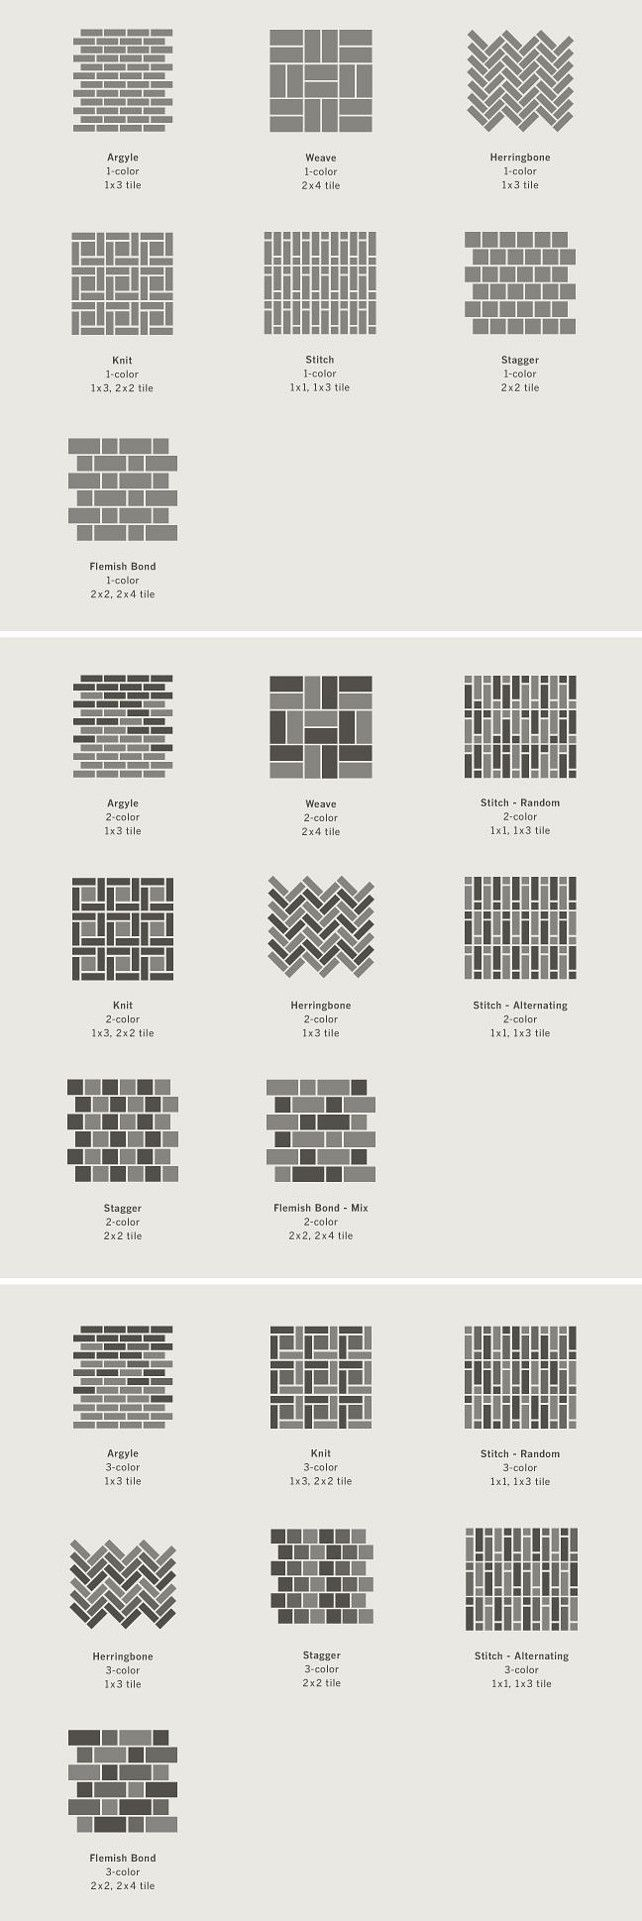 Tiling Layout Patterns. Tile Layout. Tiling Layout Ideas. Great ideas for backsplash or bathroom floor design. Tiling Layout Patterns: Argyle, weave, herringbone, knit, stitch, stagger, Flemish Bond. Tapestry Collection - Heath Ceramics layout concepts